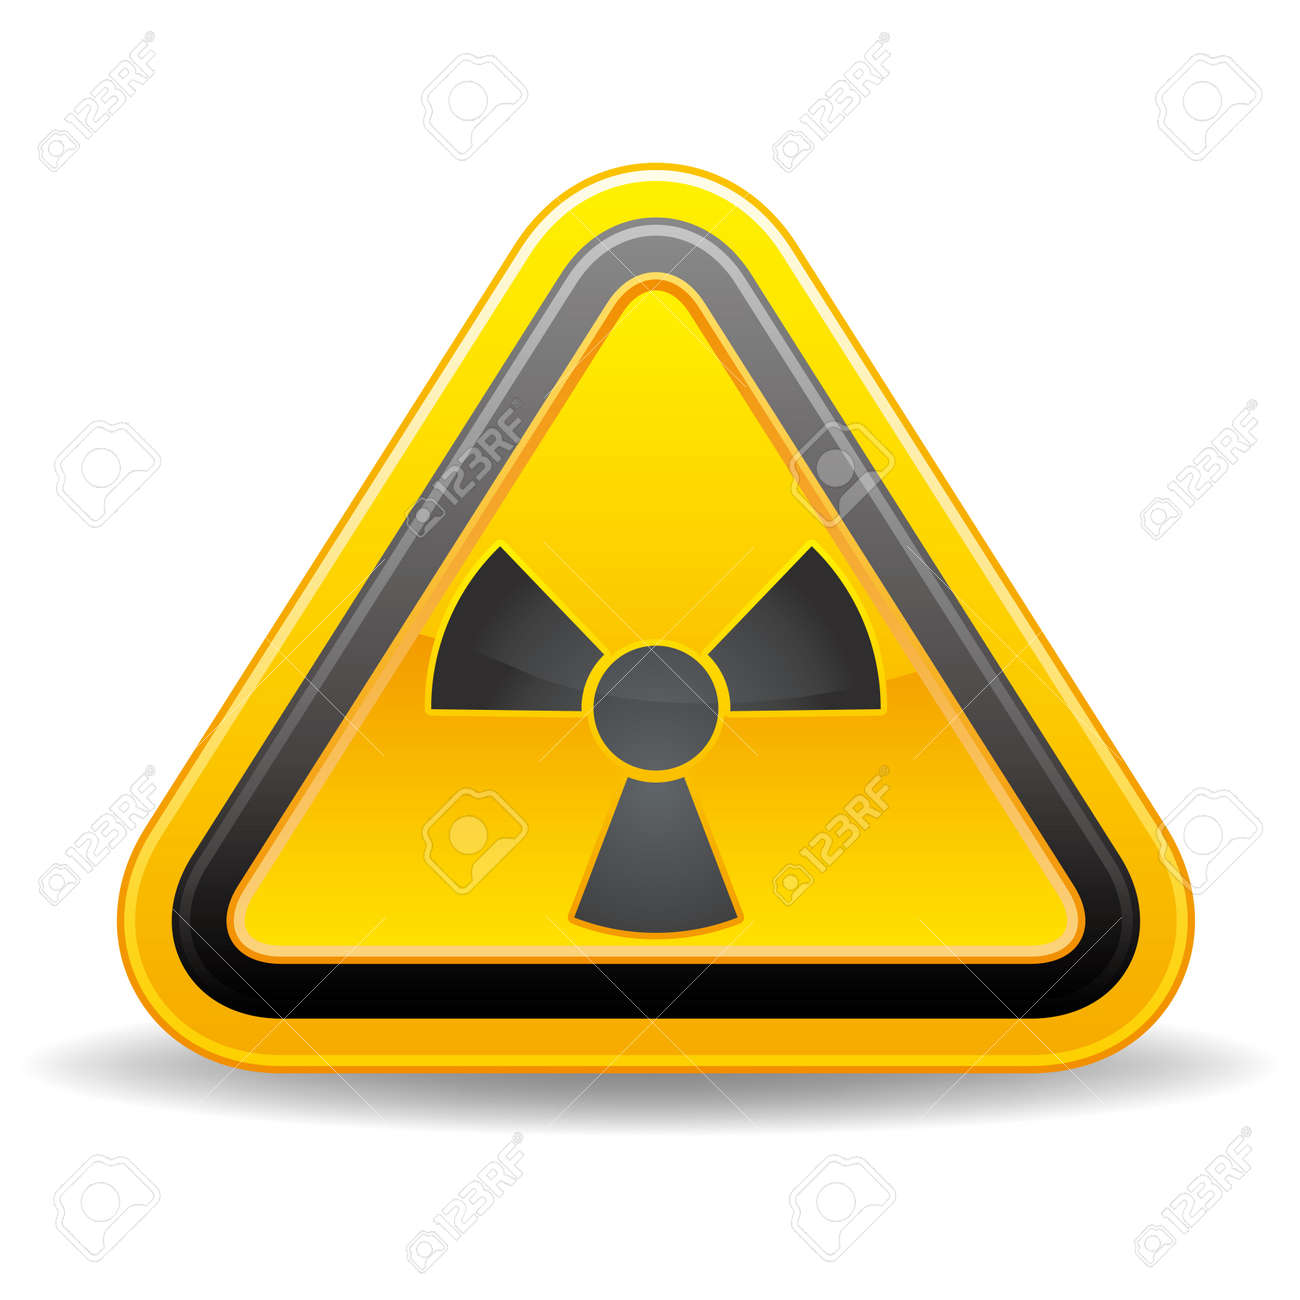 triangular nuclear warning sign on white background Stock Vector - 9034219